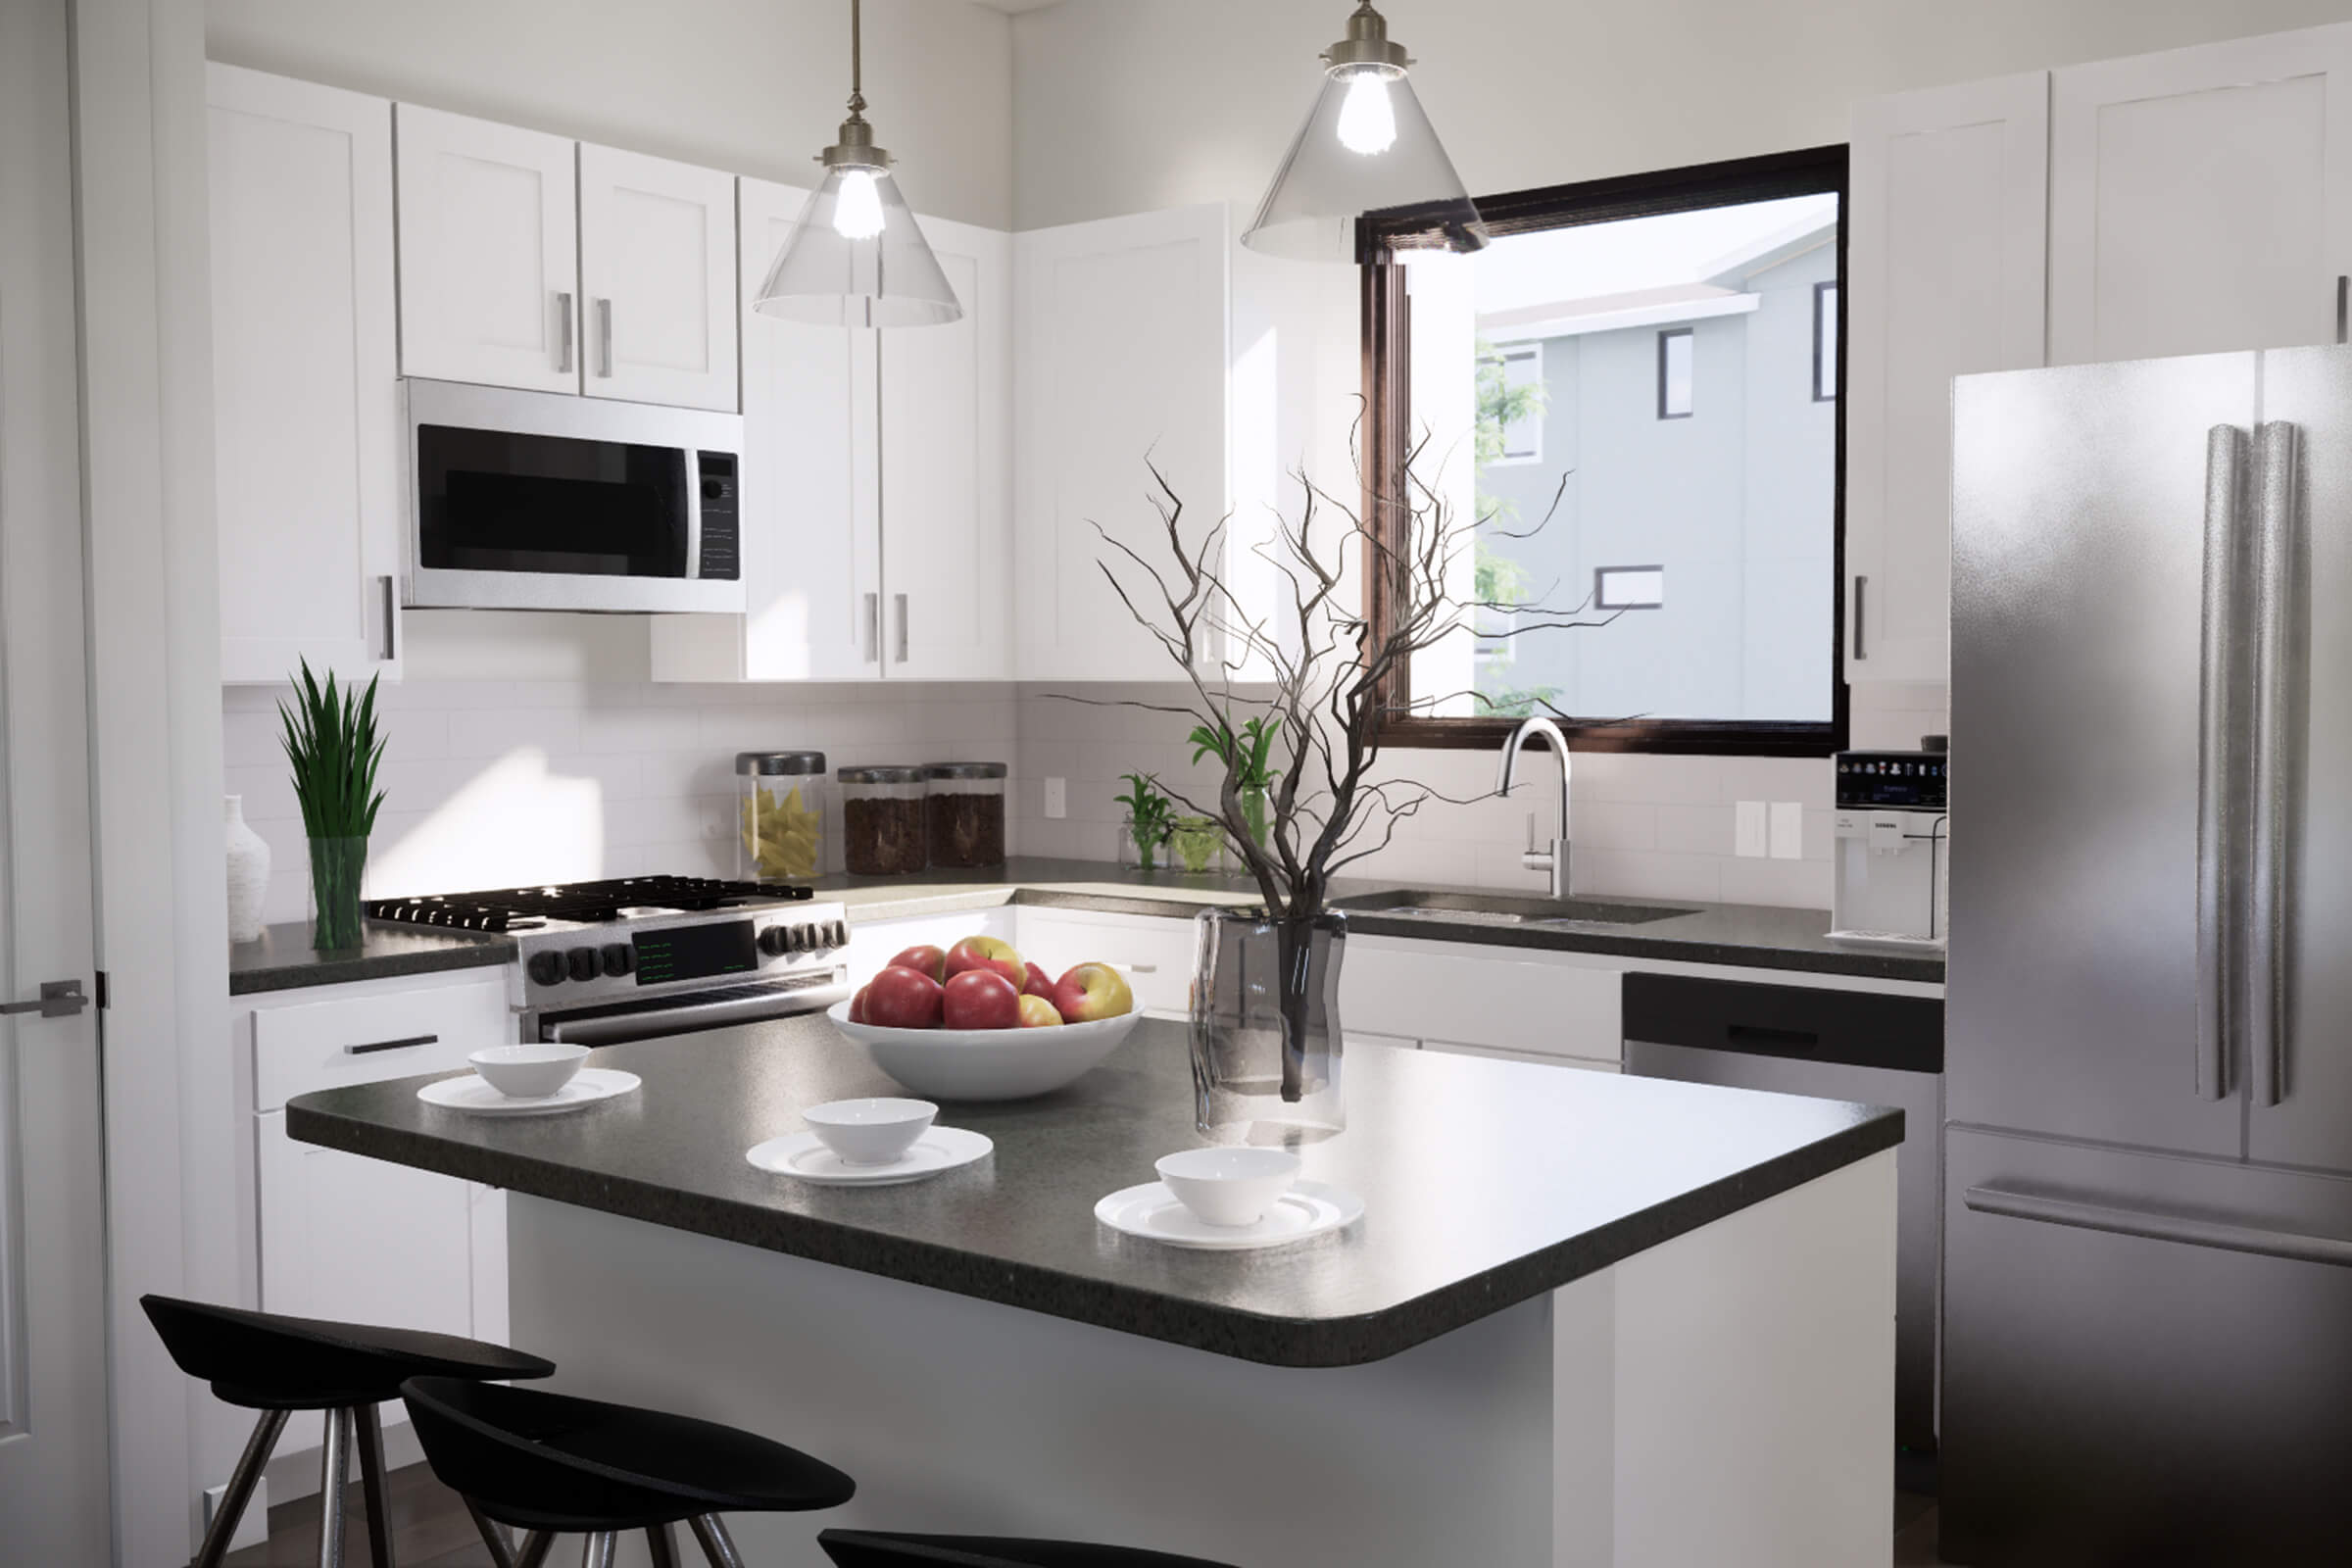 a kitchen with a sink and a dining table